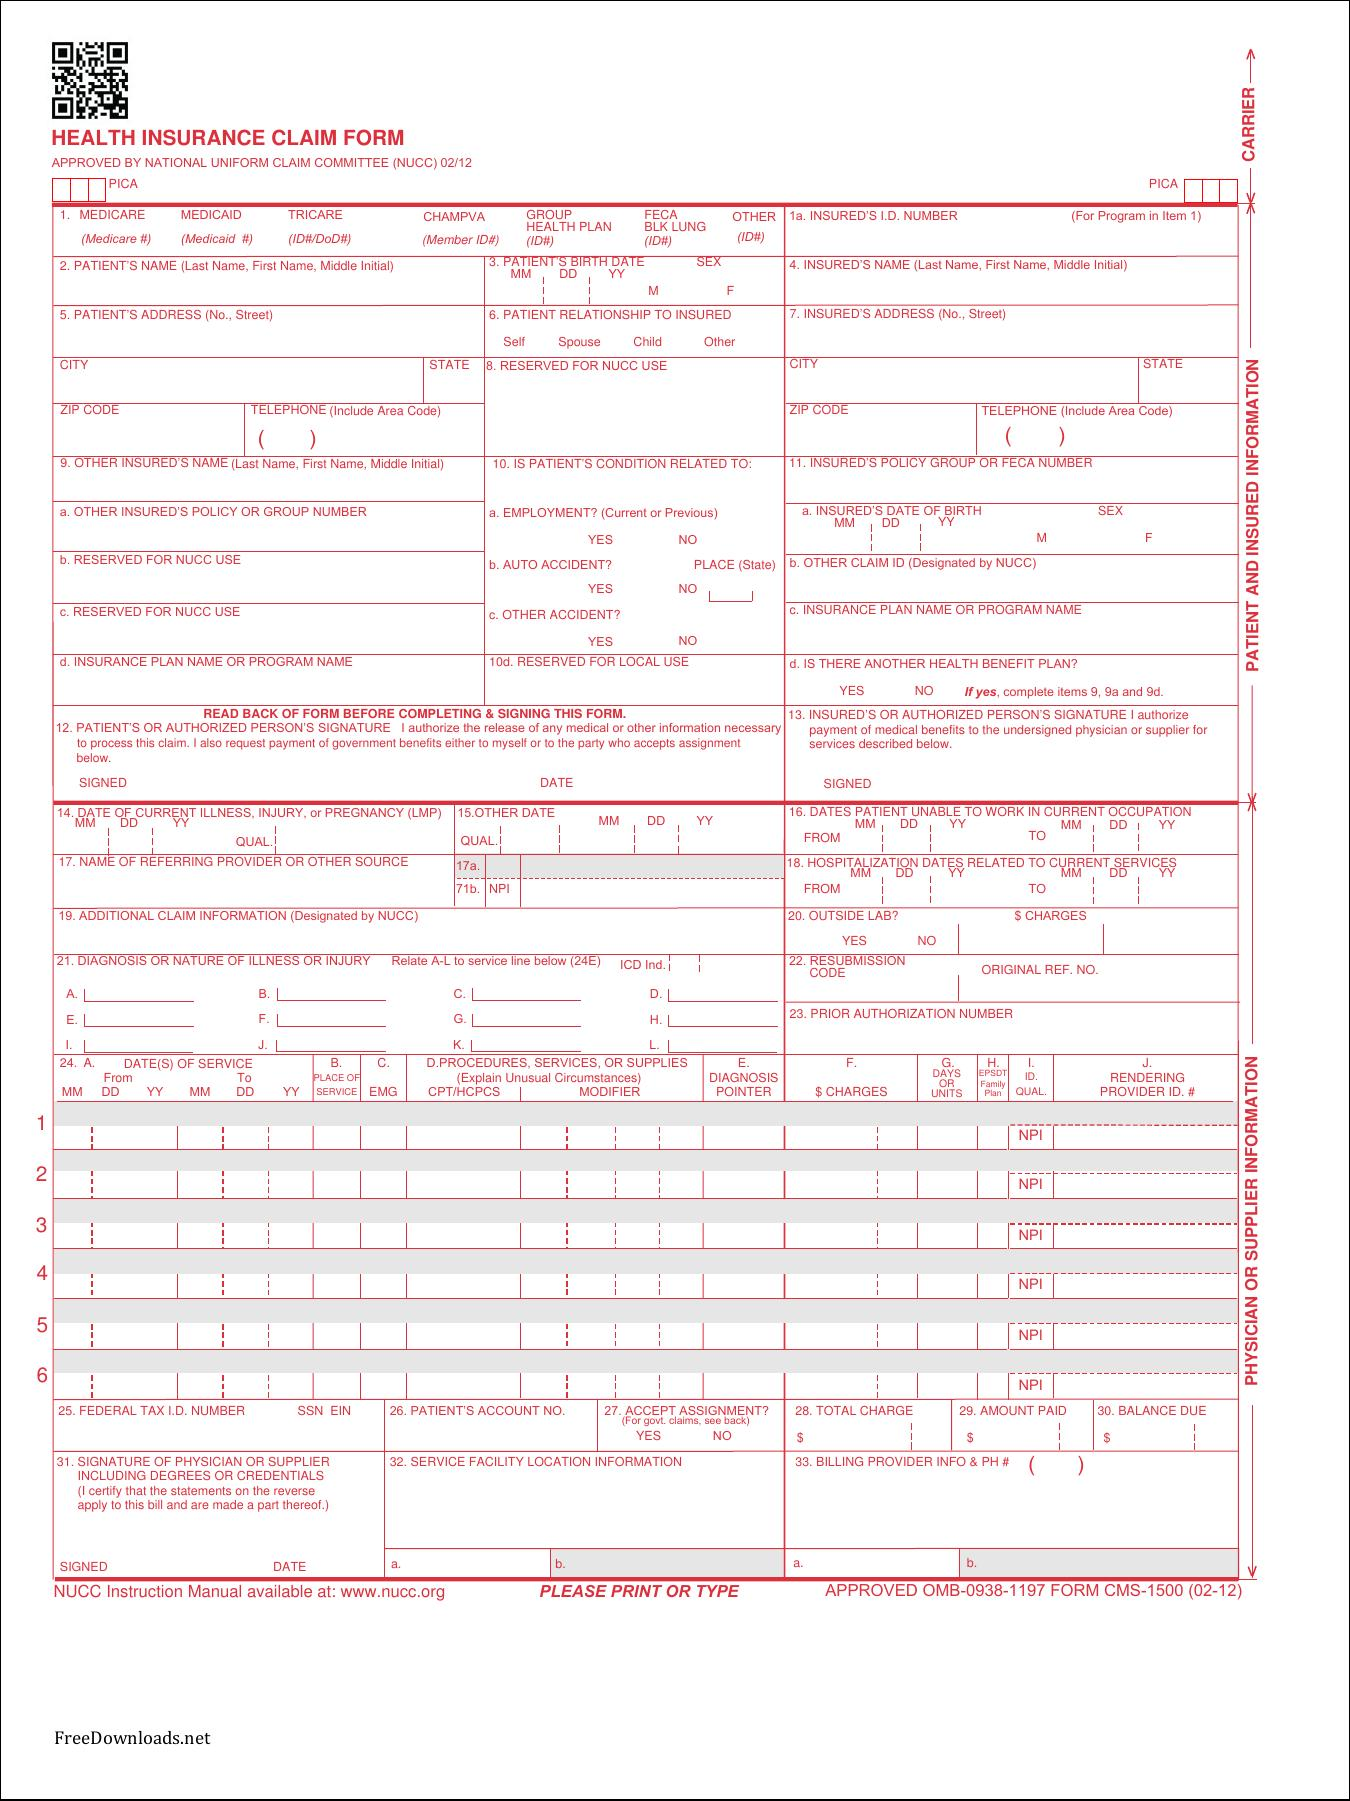 Cms 1500 Claim Form Template